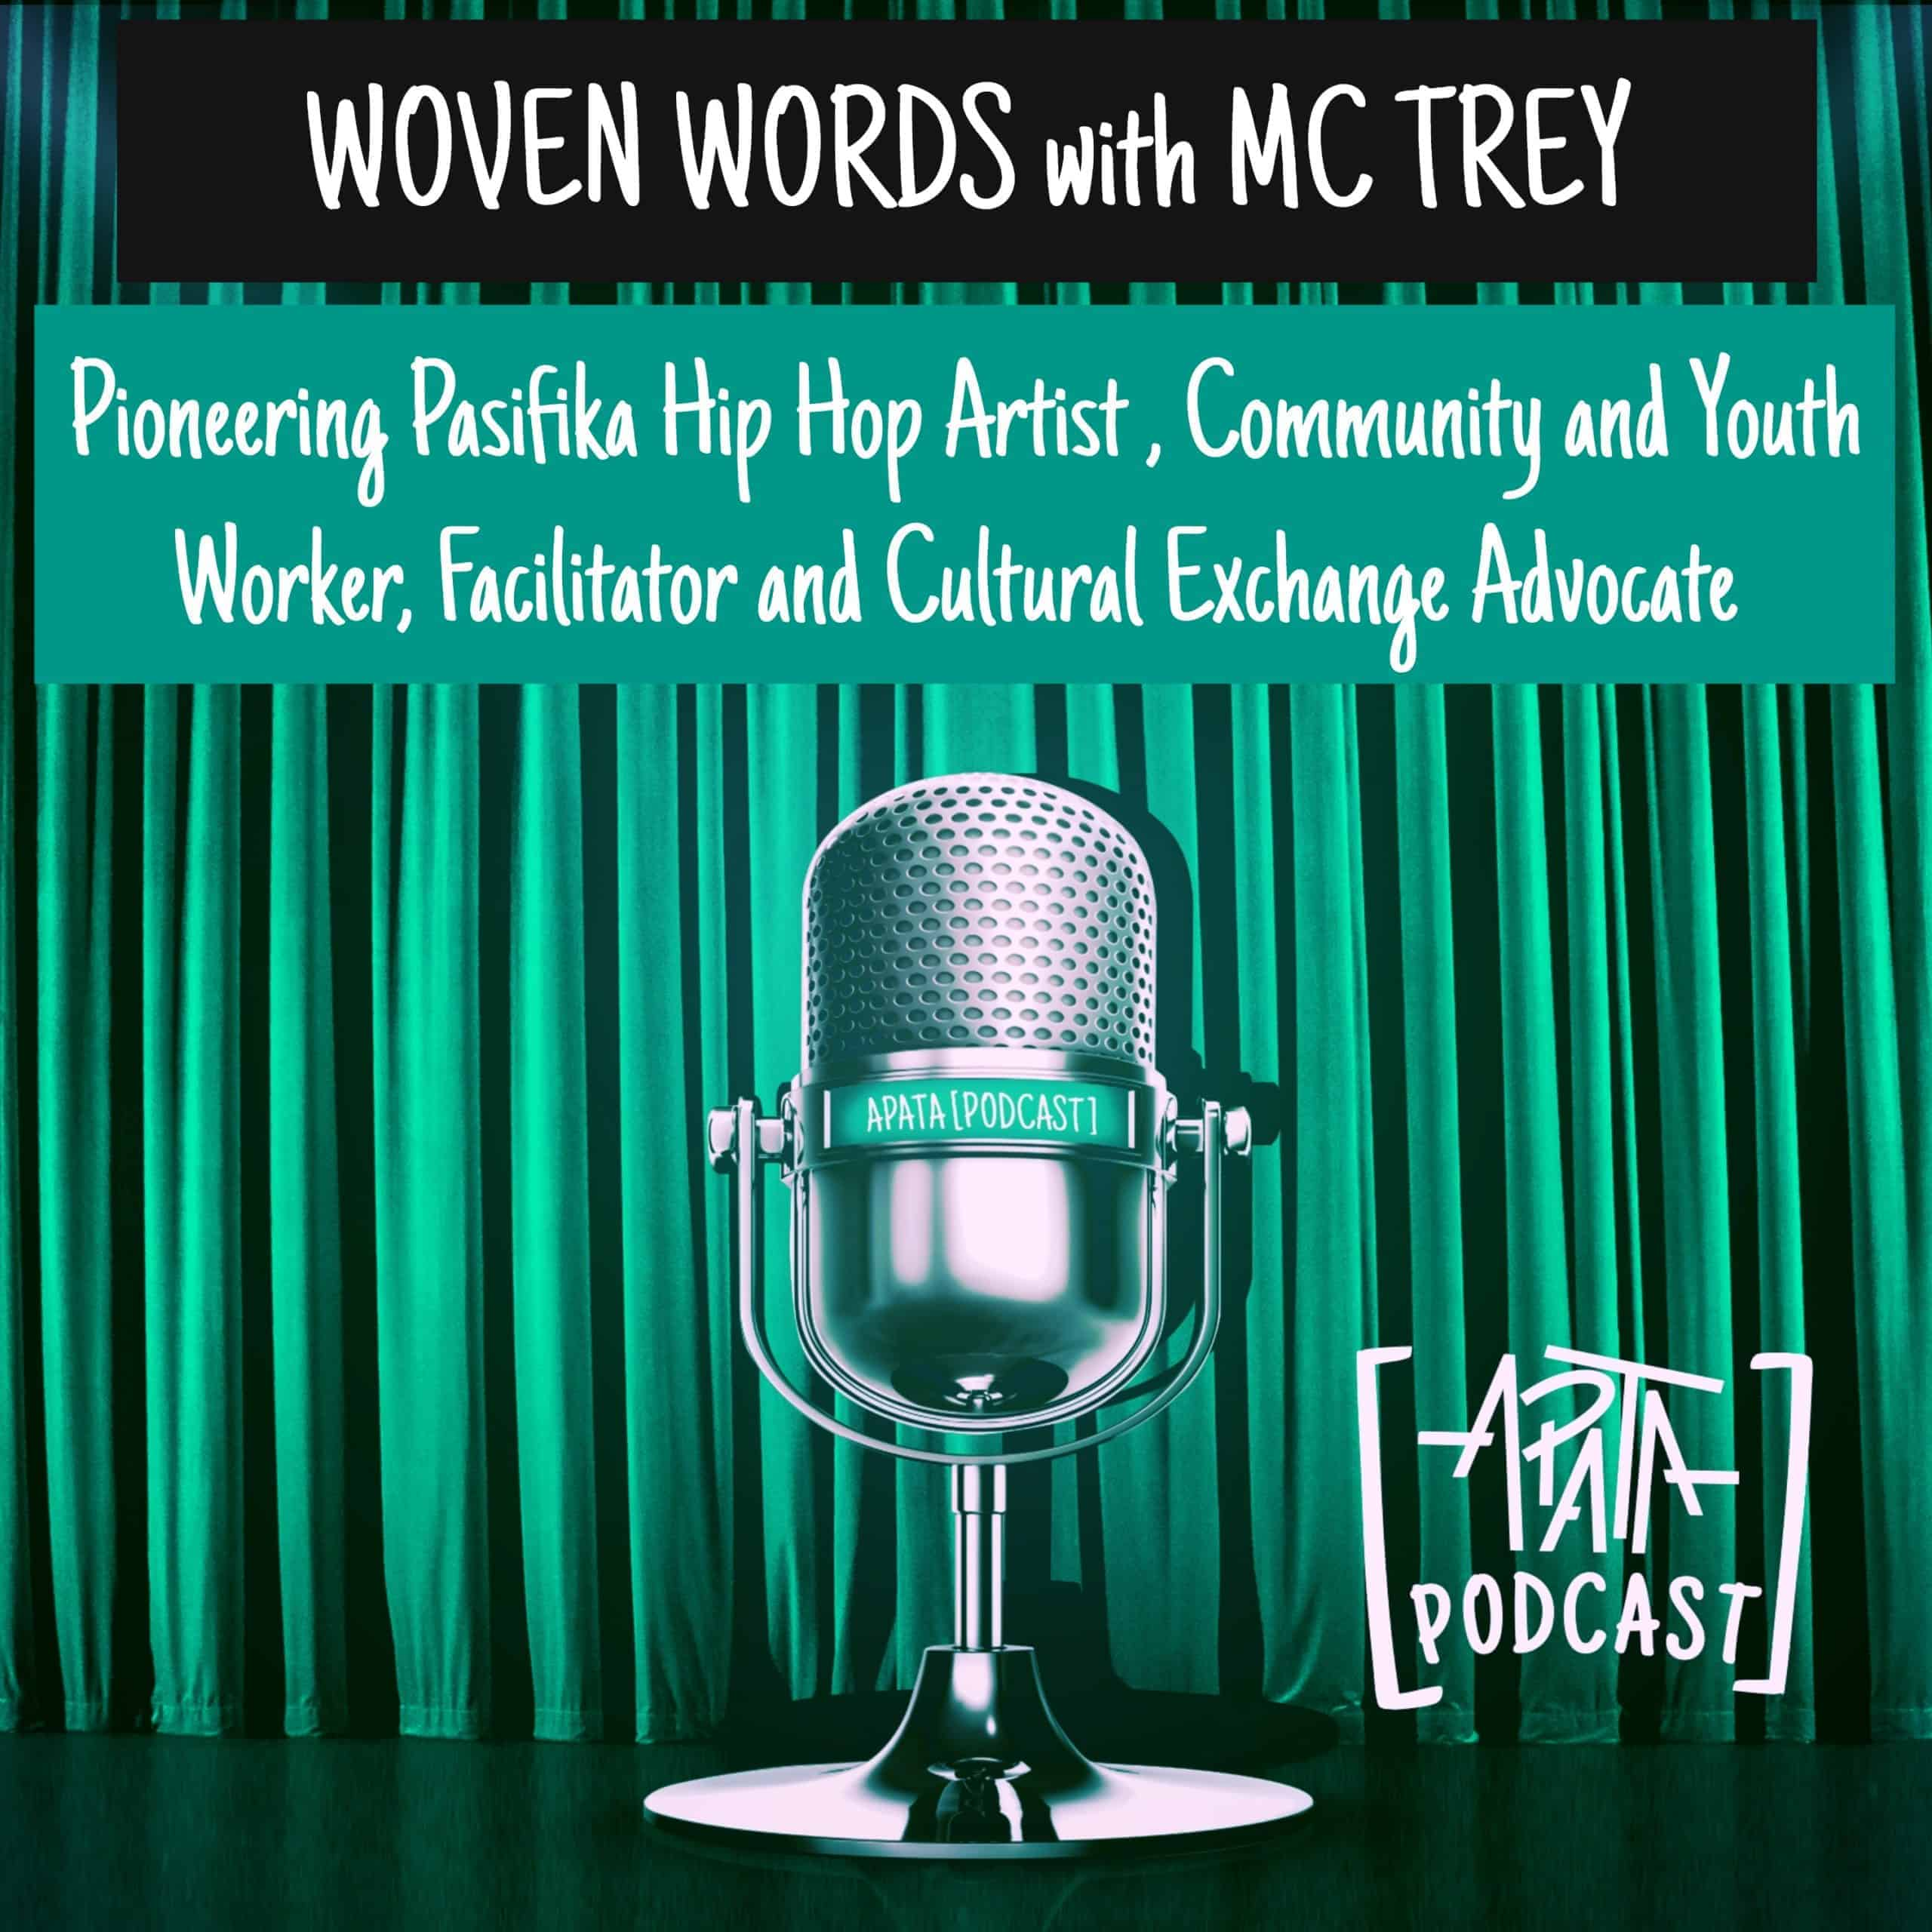 Woven Words with MC Trey